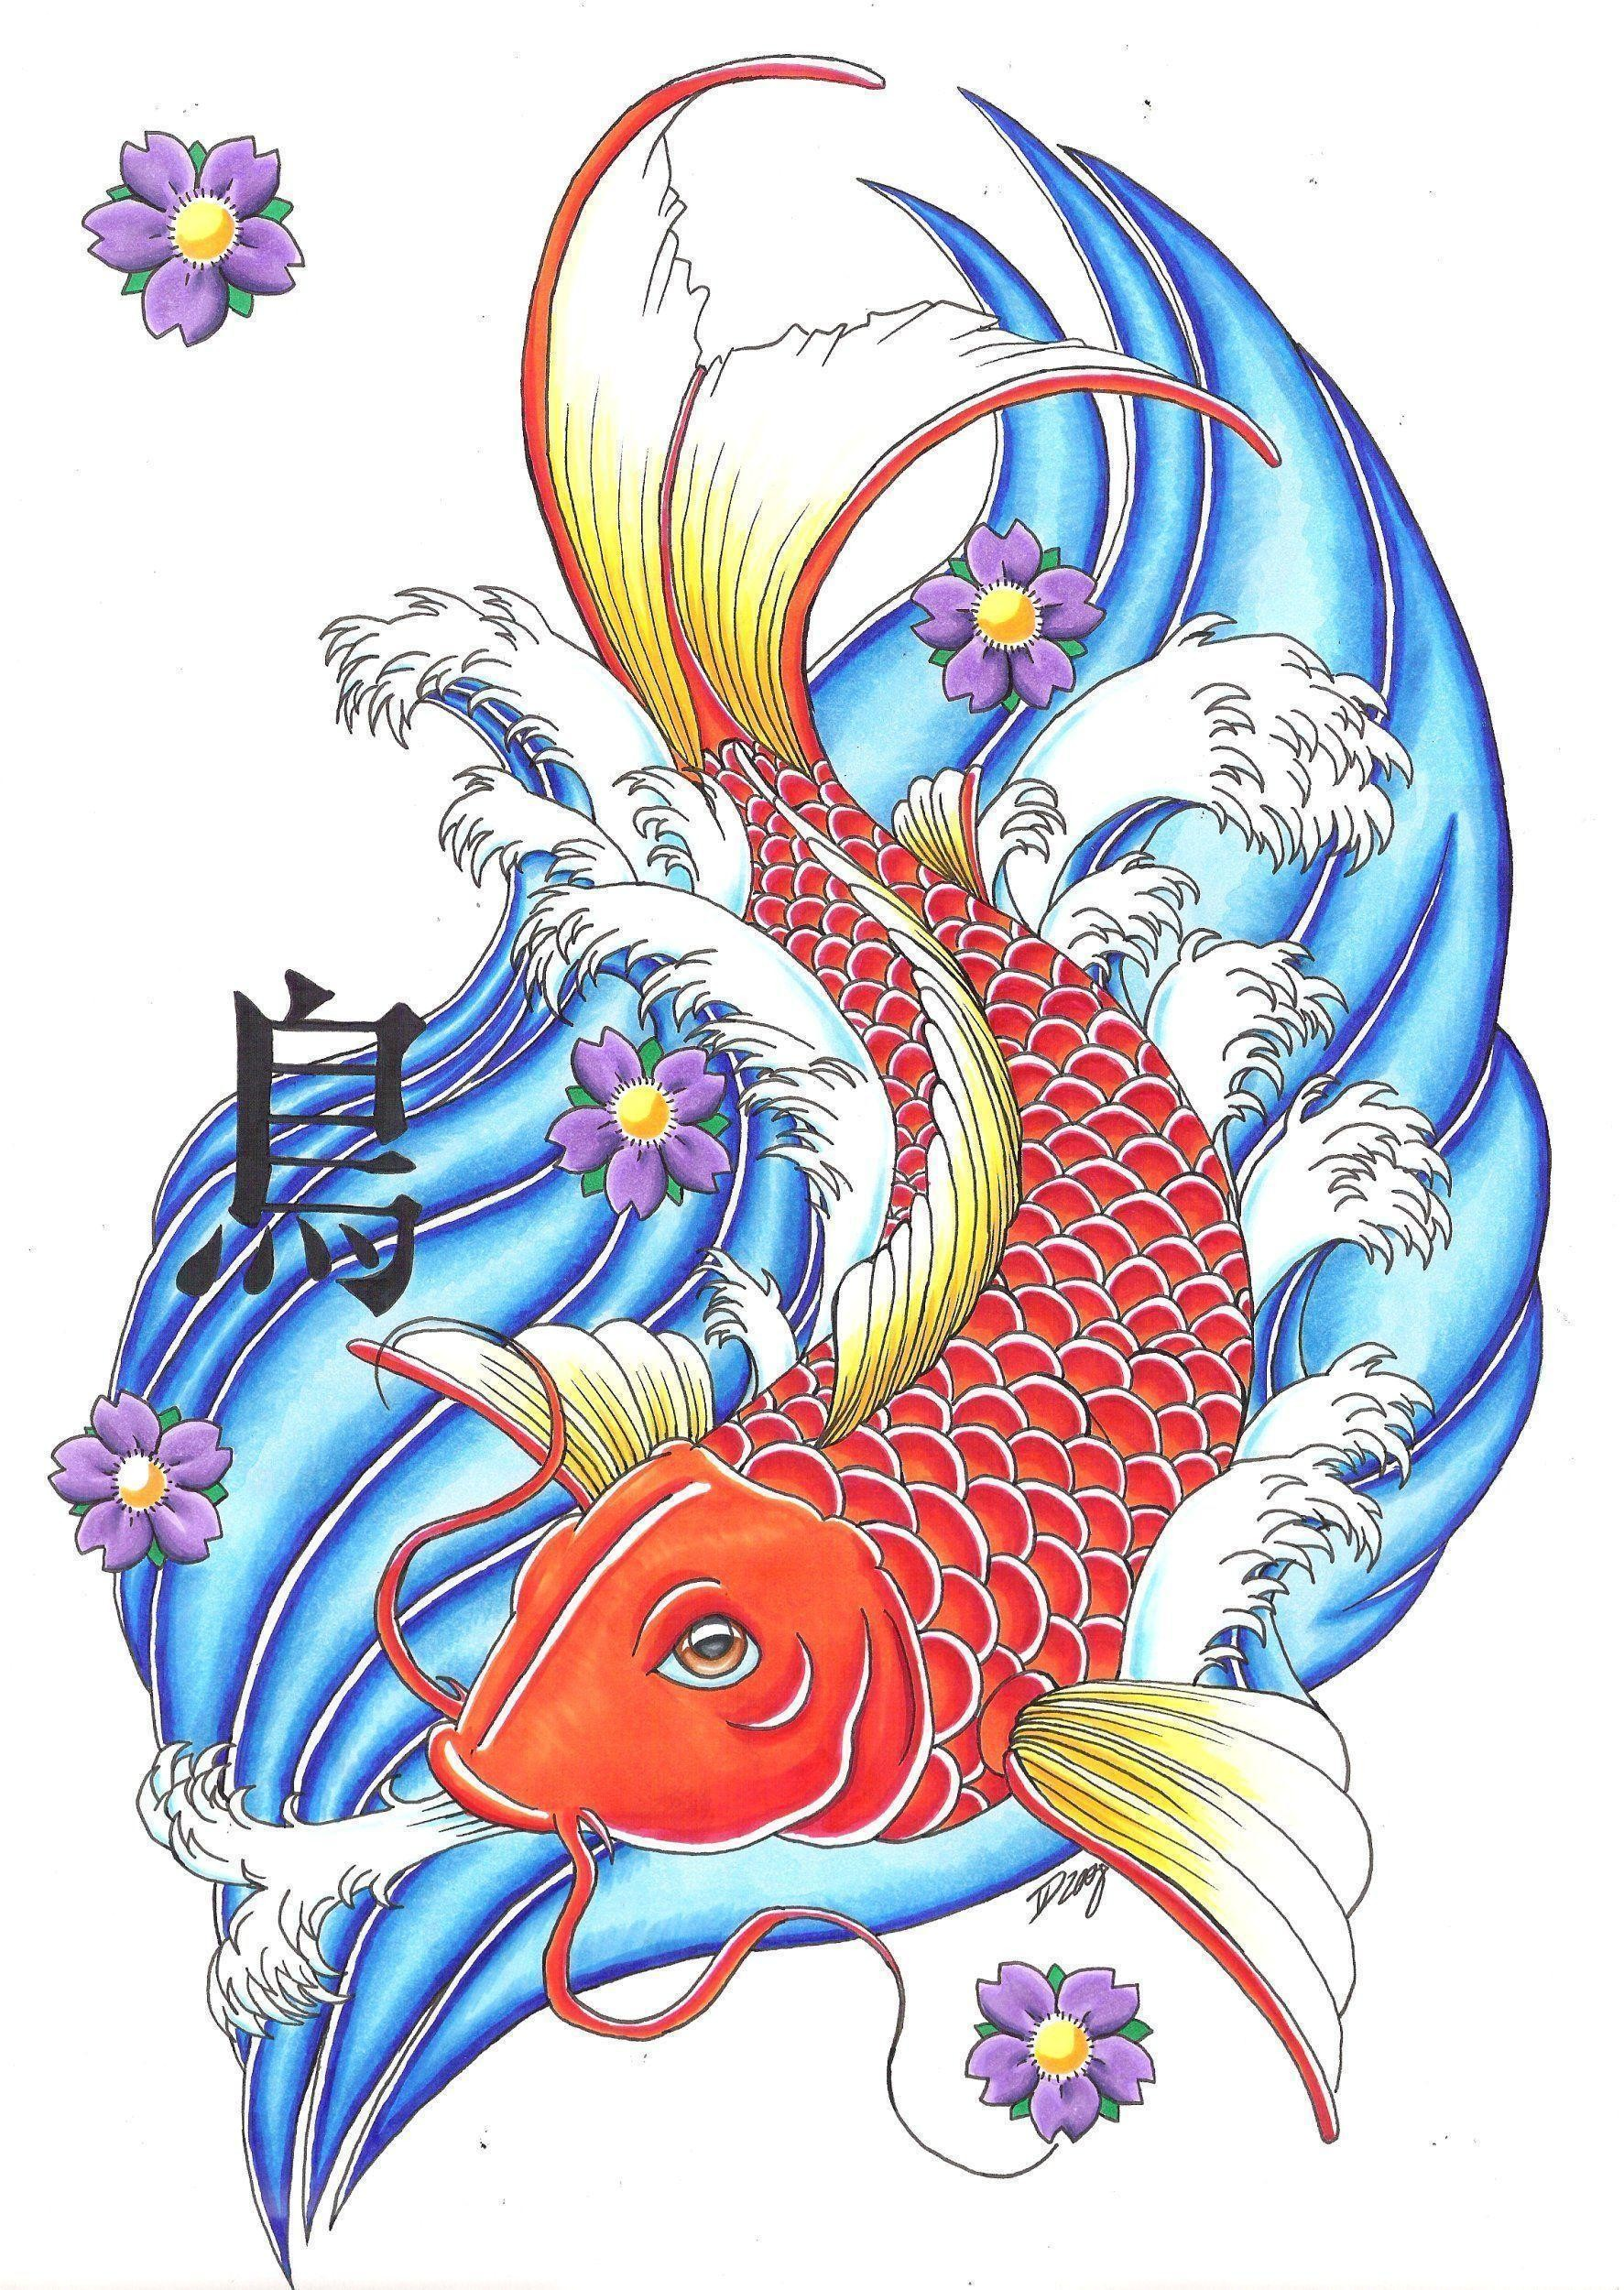 Res: 1773x2500, Images For > Japanese Koi Tattoo Wallpaper